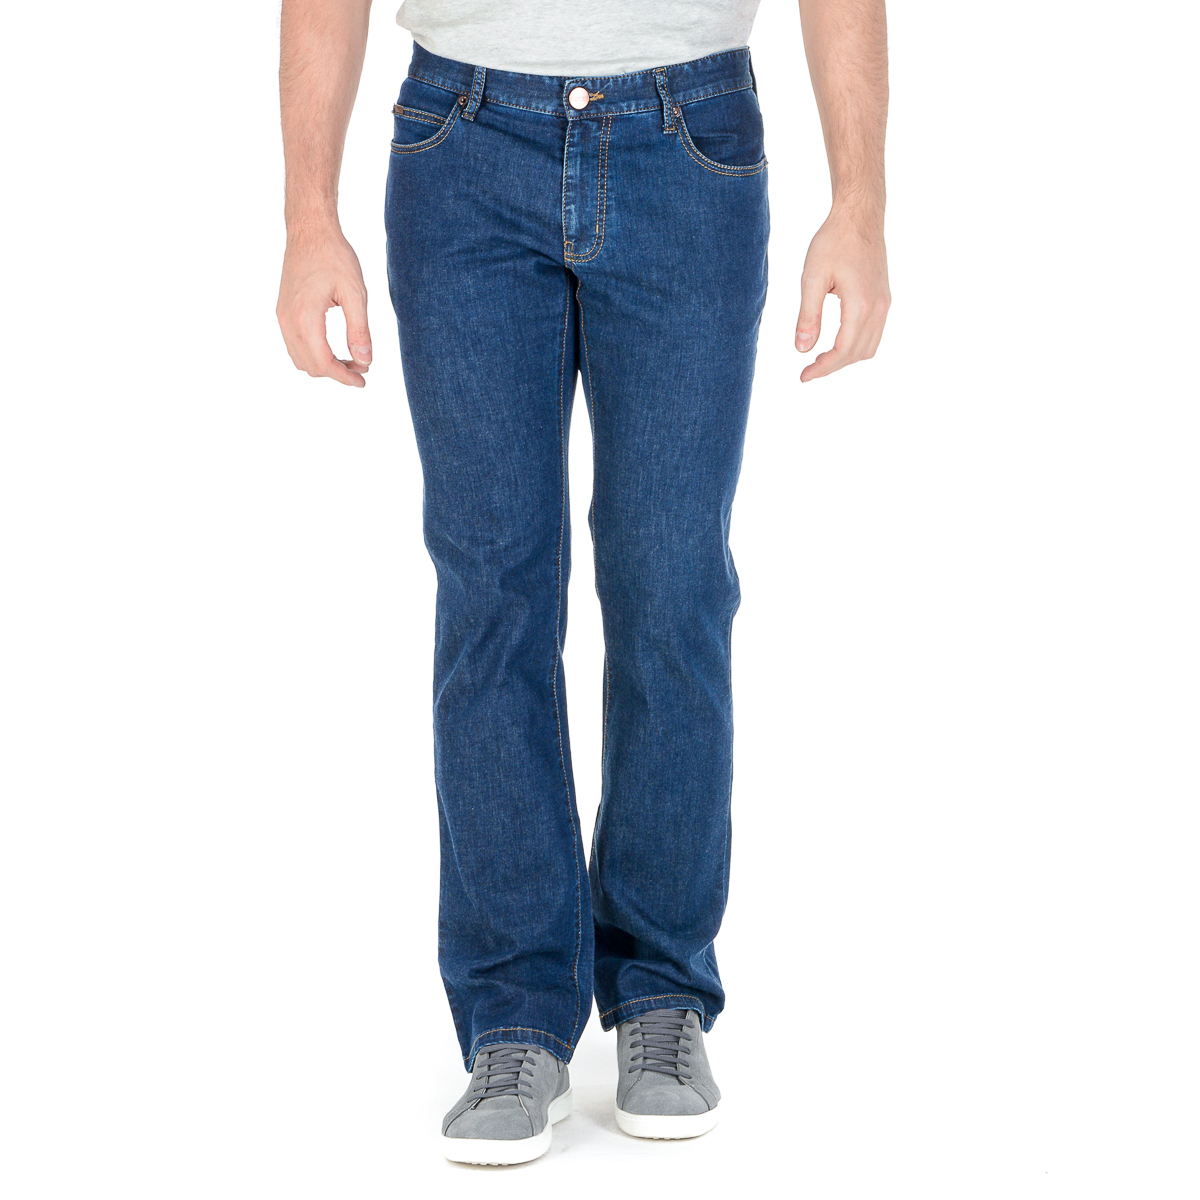 Primary image for Armani Collezioni Mens Jeans Blue